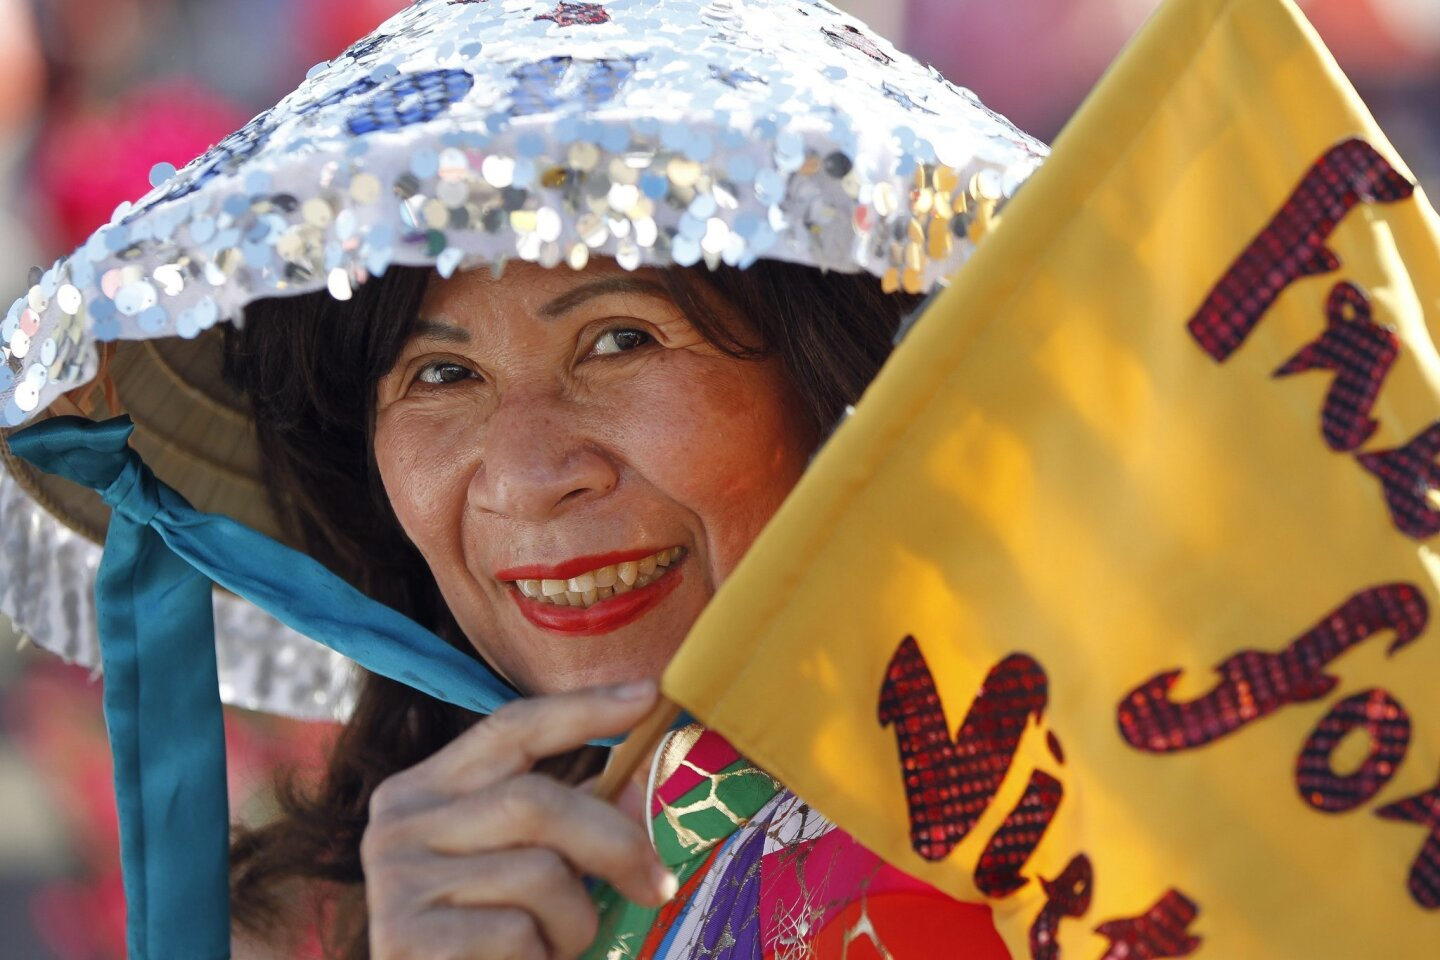 """Tam Pham carries her flag that says """"Freedom for Vietnam"""" during the Little Saigon San Diego Foundation's annual Lunar New Year celebration at the Qualcomm Stadium parking lot in San Diego on Saturday, February 14, 2015."""